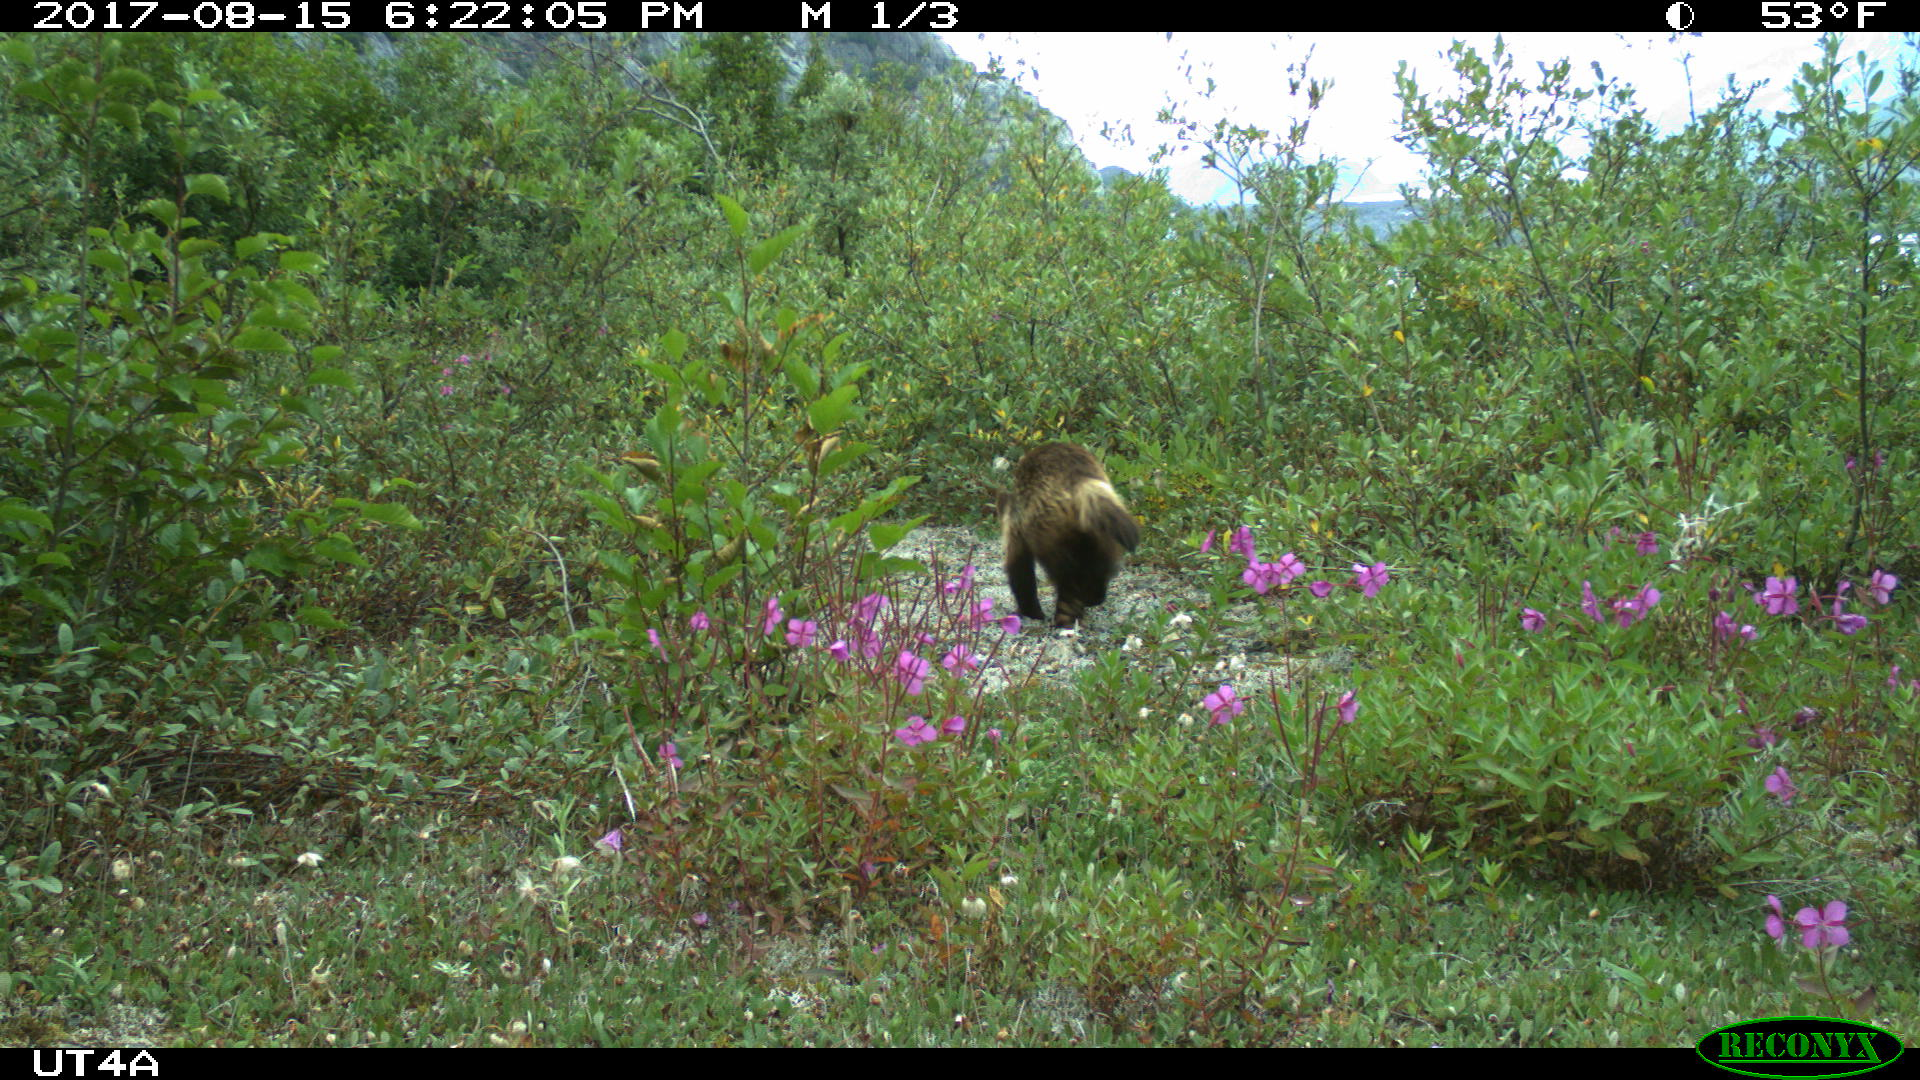 wolverine runs by a motion sensor camera